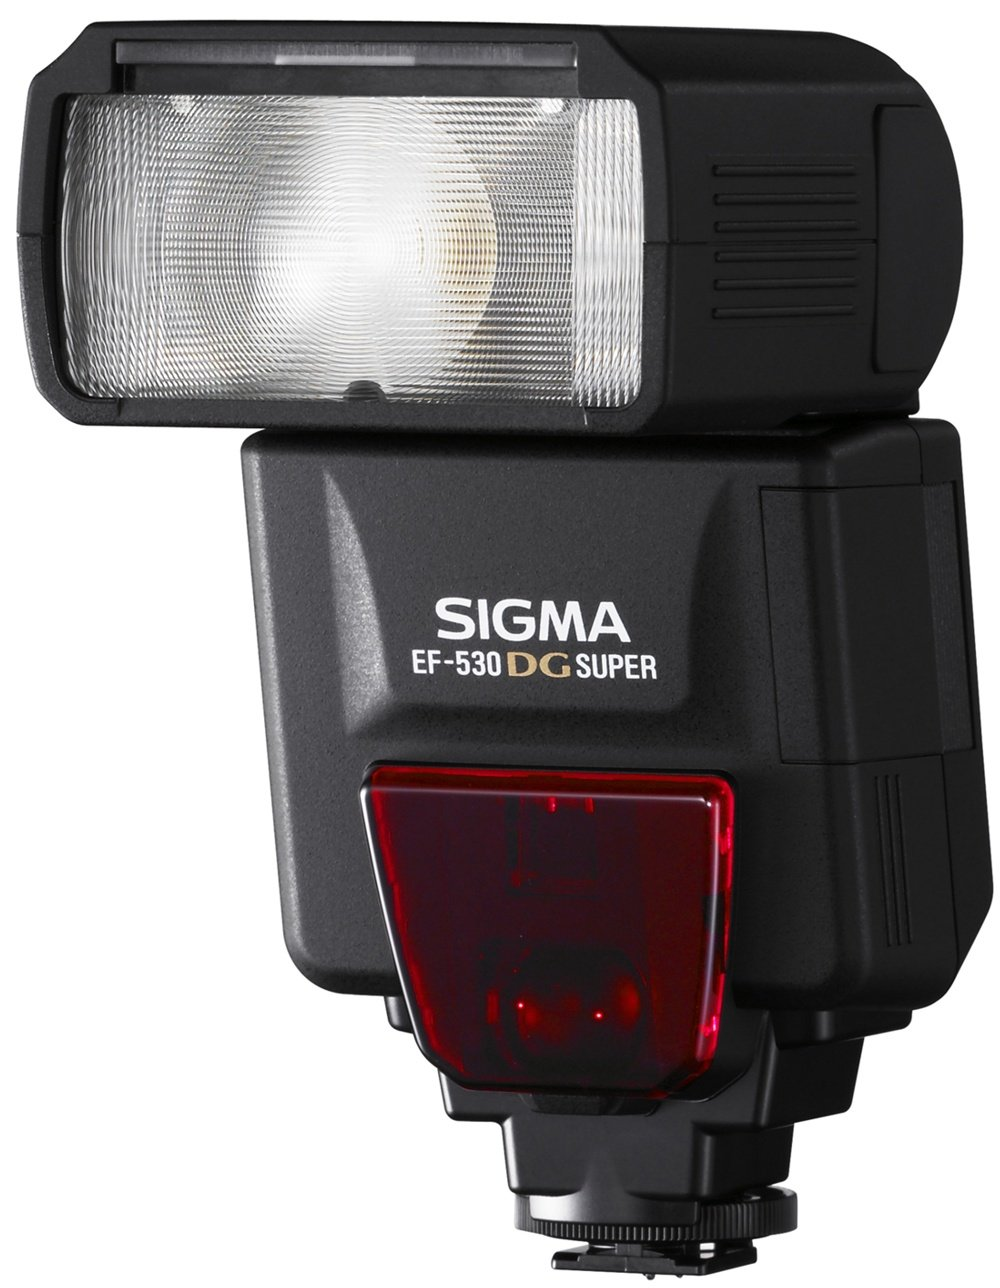 Sigma EF-530 DG Super Electronic Flash for Pentax and Samsung DSLR by Sigma